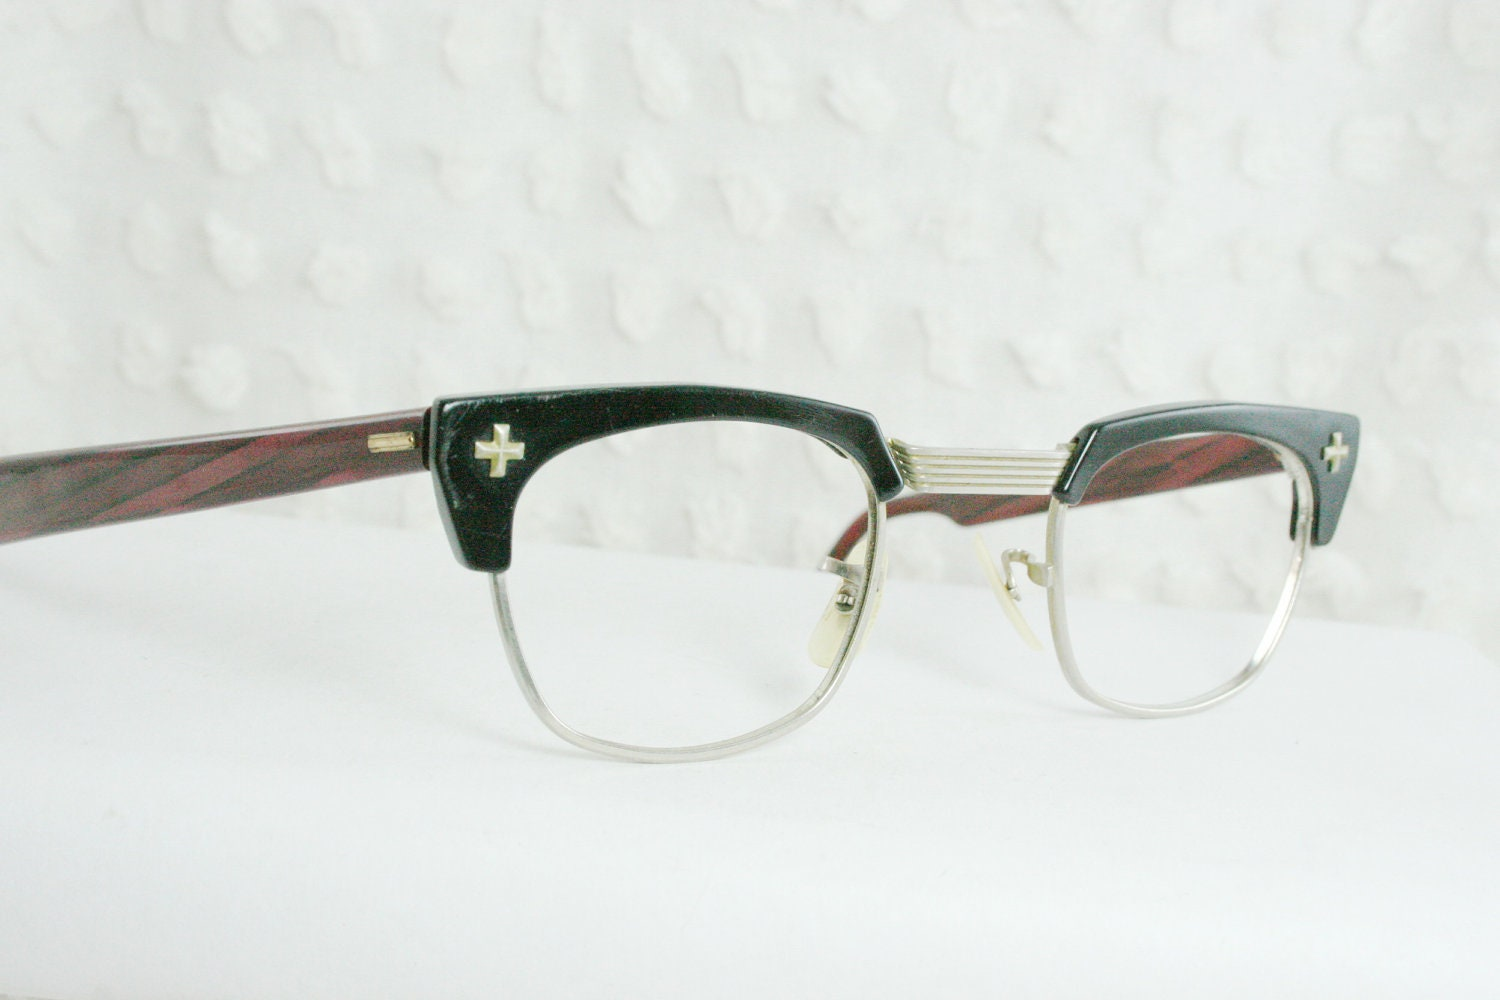 Men s European Eyeglass Frames : 50s Mens Glasses Vintage 1950s Eyeglasses Black by DIAeyewear